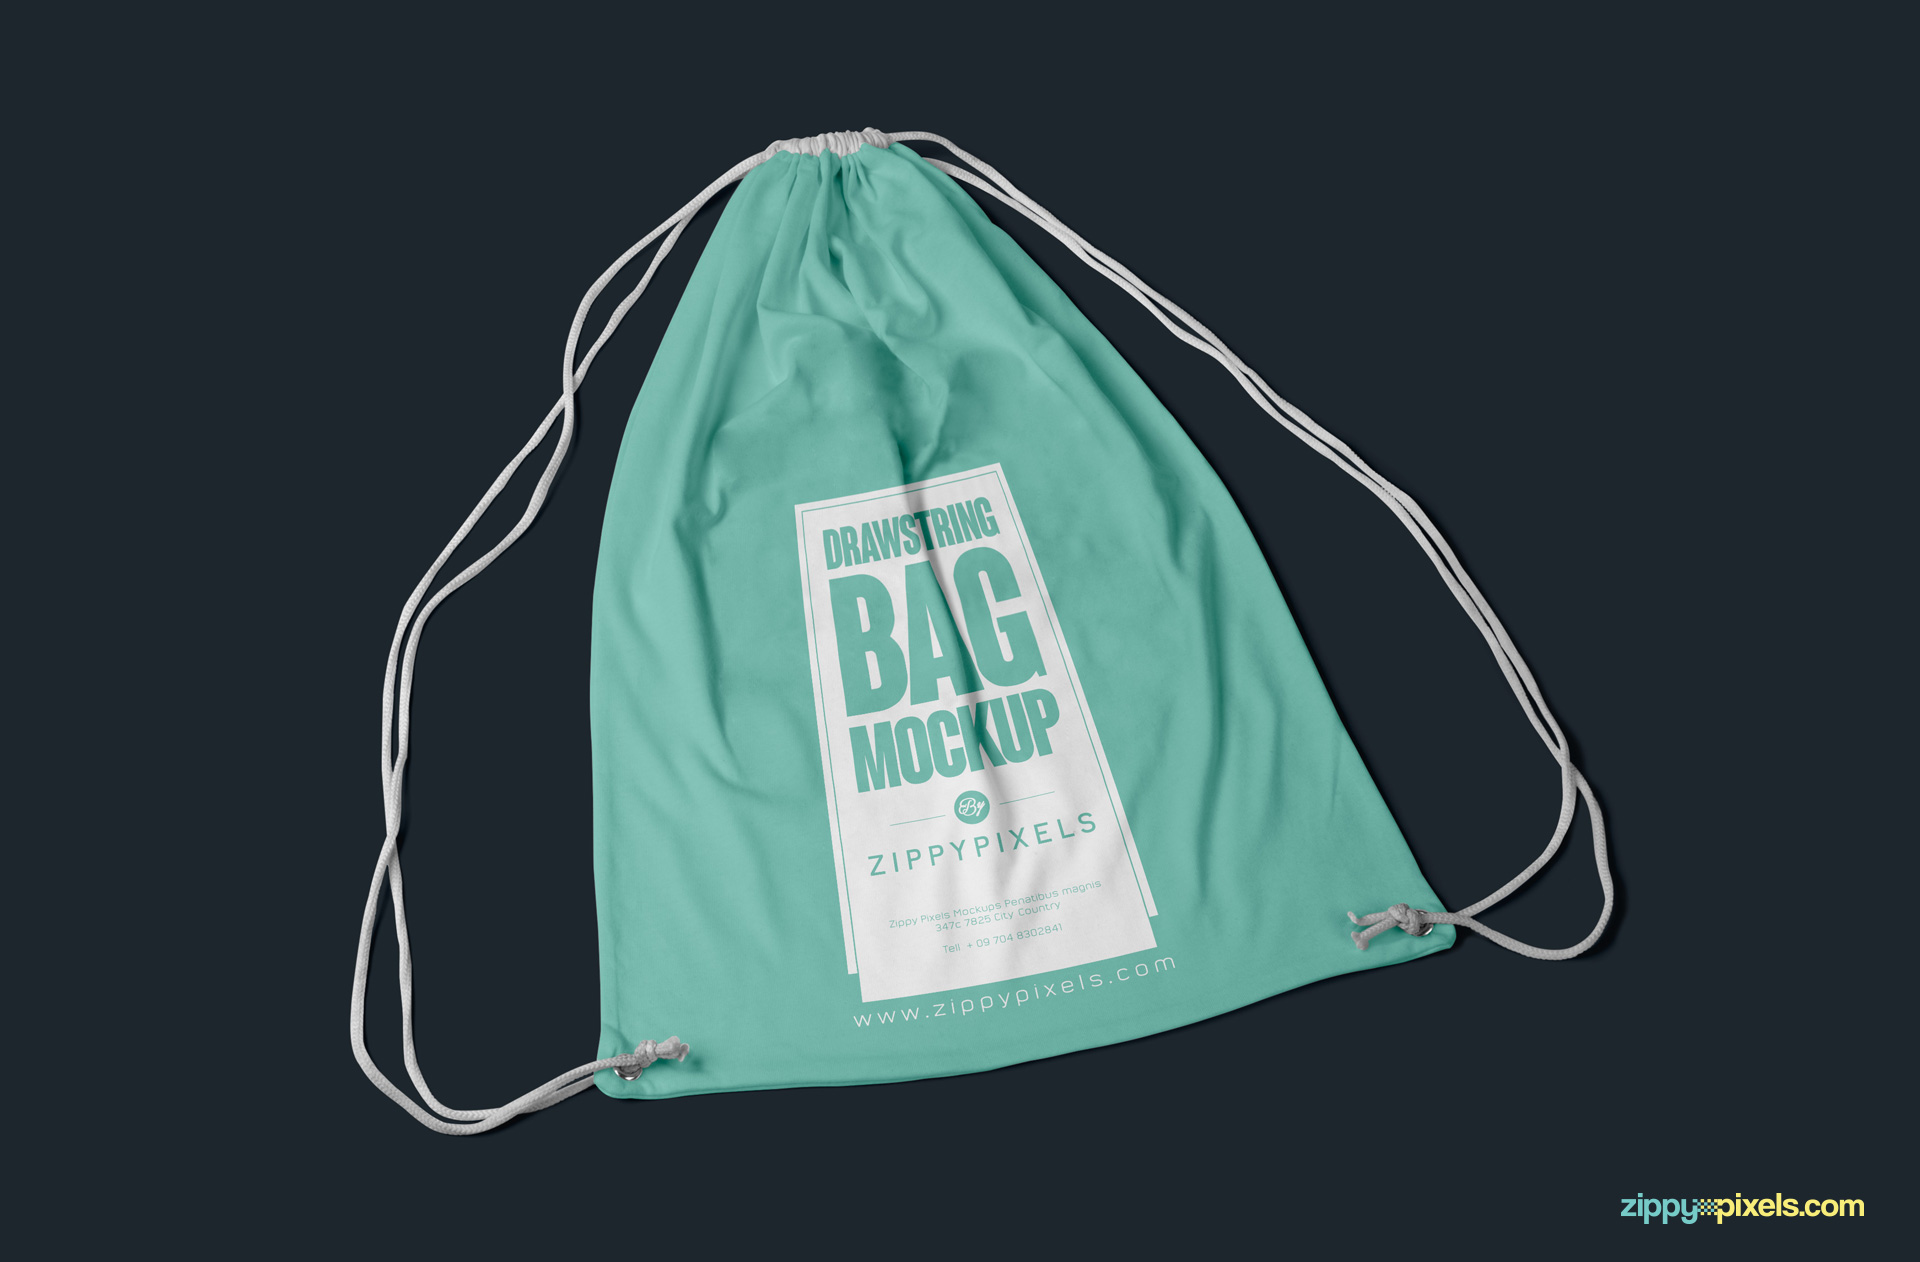 Customizable free drawingstring backpack mockup for branding designs